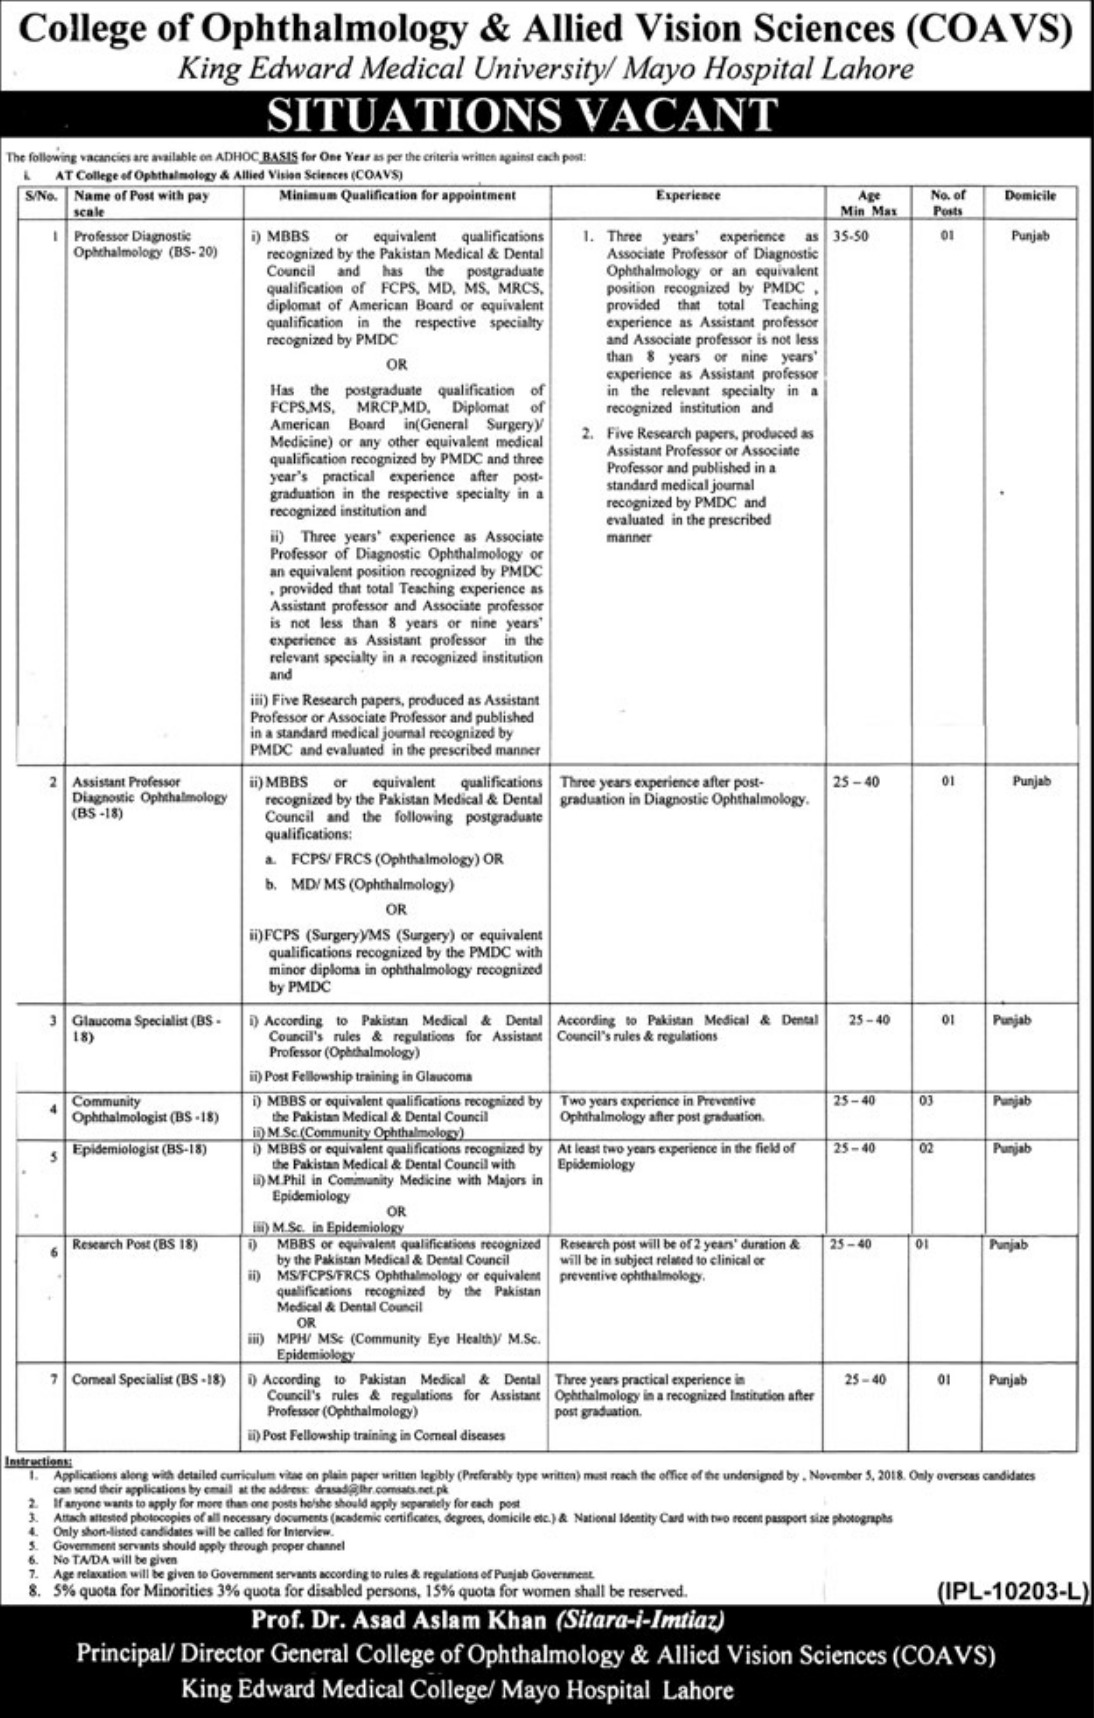 COAVS Mayo Hospital Lahore Latest Jobs 2018